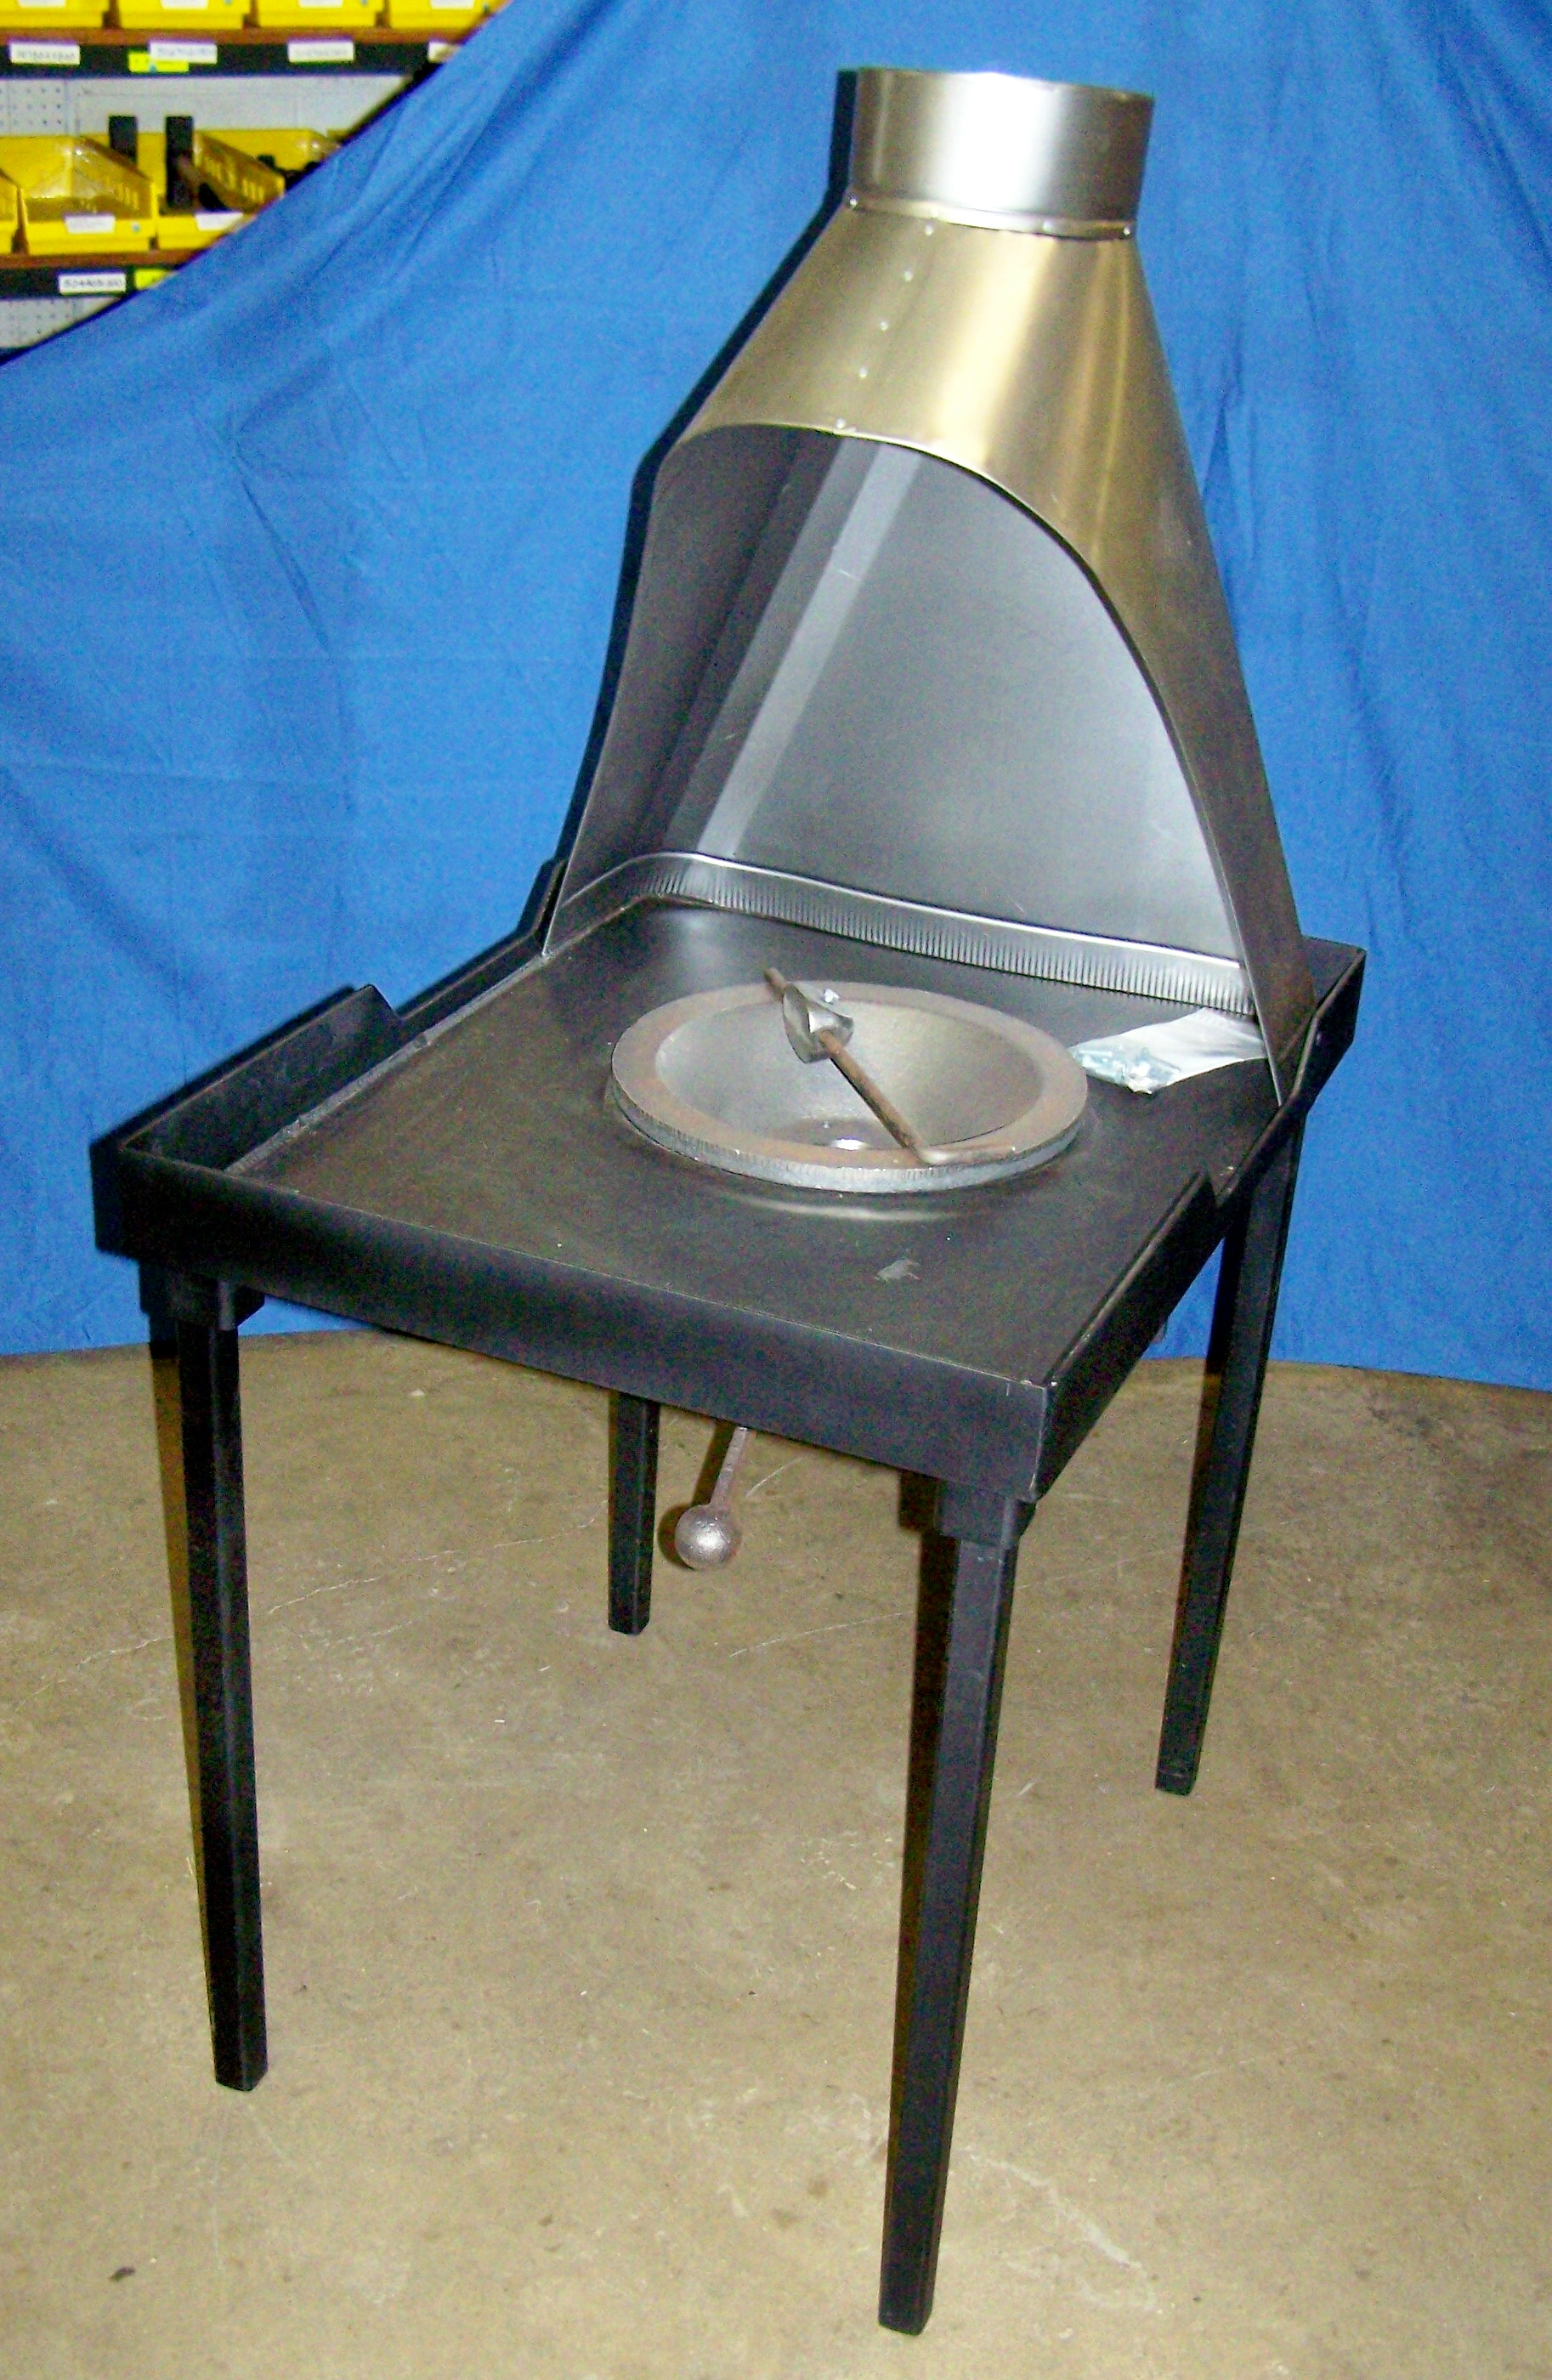 Centaur C37 Floor Model Coal Forge with Coke Firepot and Hood - Eligible for Free Shipping. See Home Page for detals